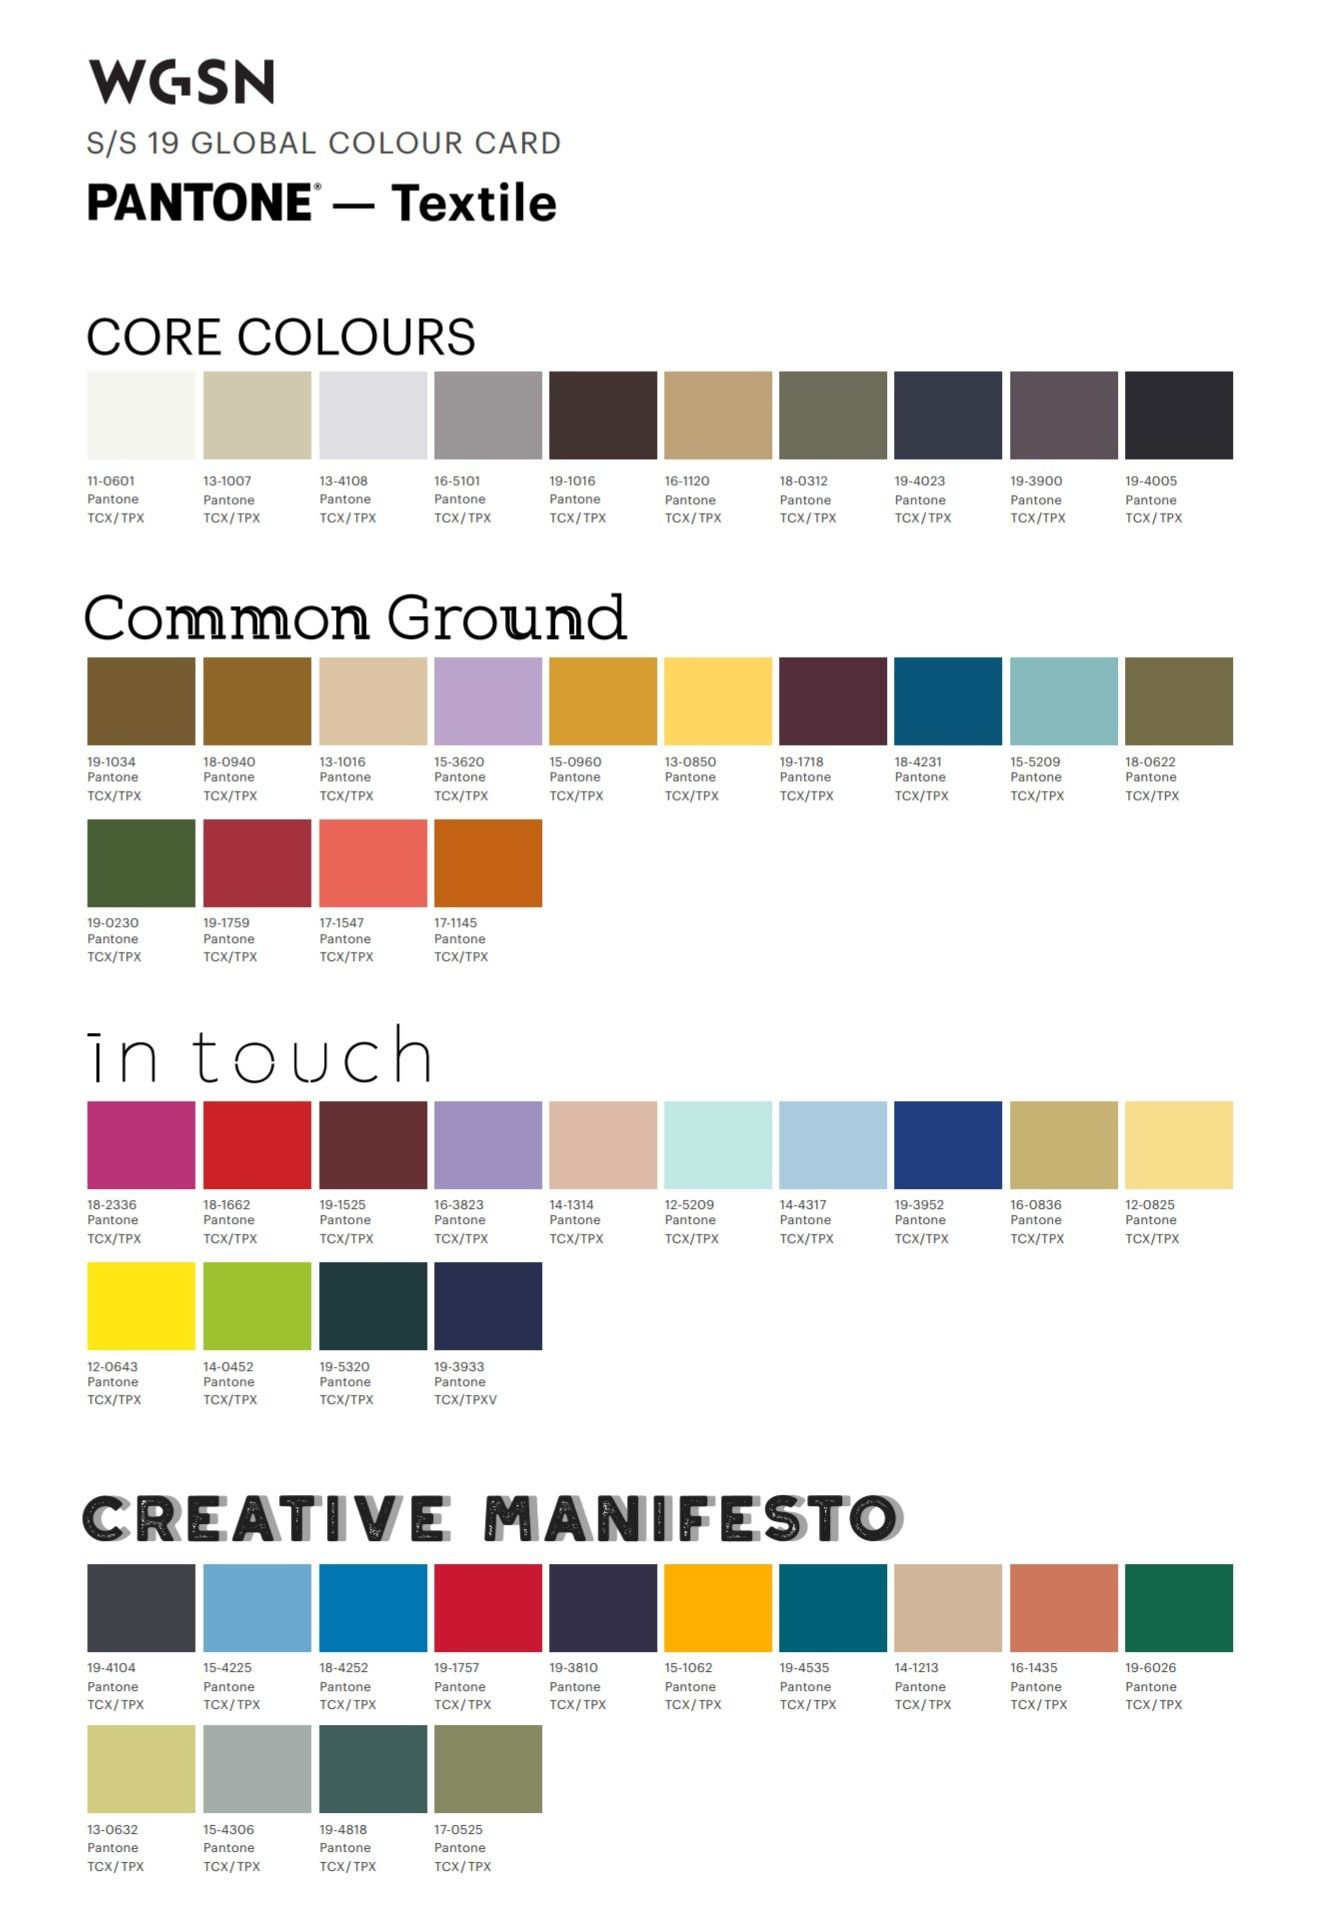 Pantone fashion and home colour guide 97